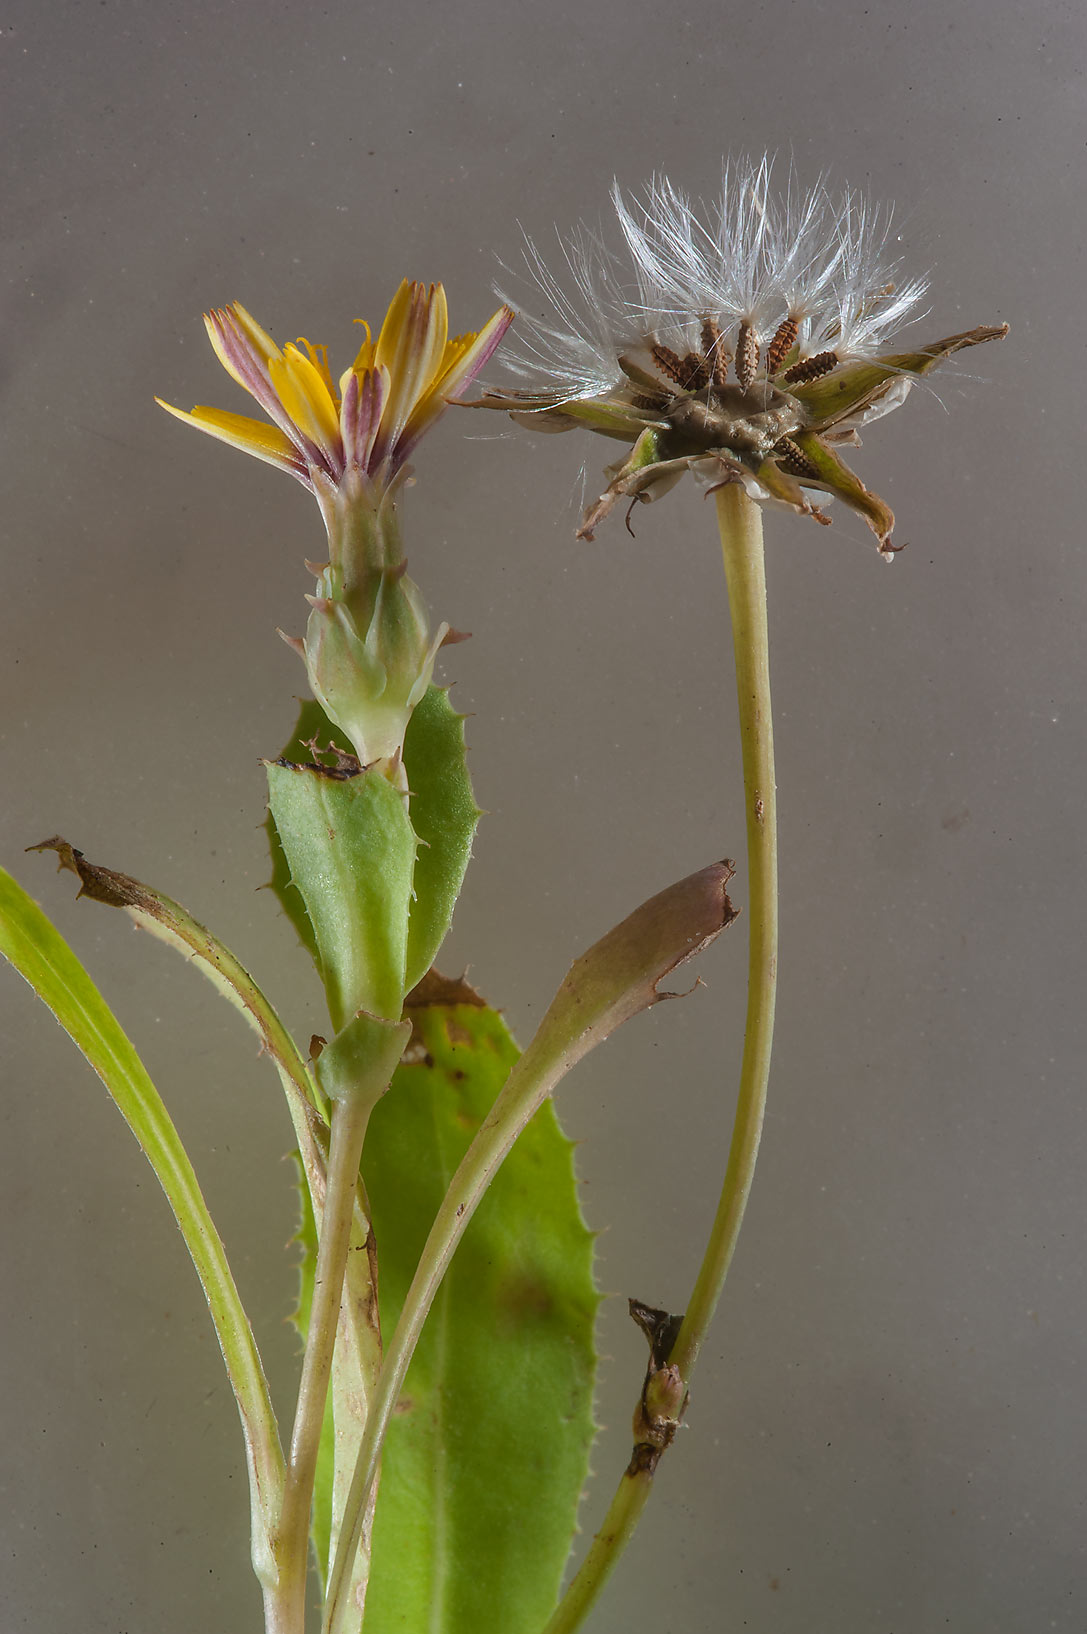 Flower and seeds of false sowthistle (Reichardia...of Ras Laffan farms. Northern Qatar